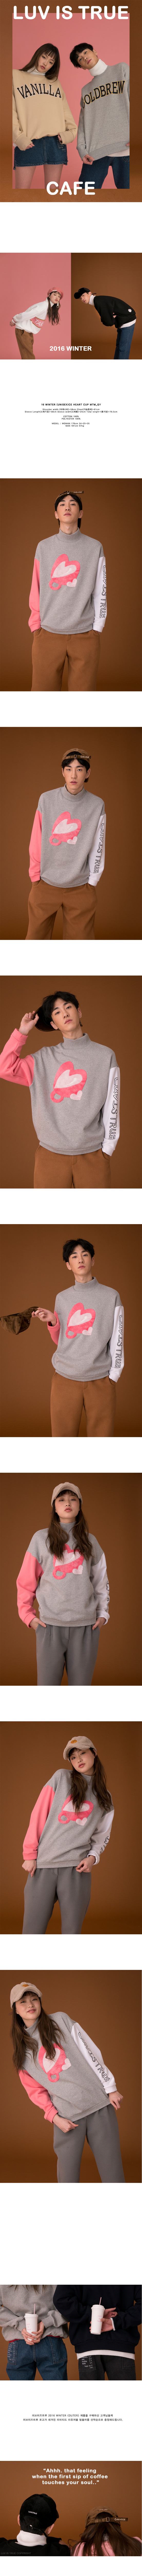 러브이즈트루(LUV IS TRUE) (UNISEX)CE HEART CUP MTM_GY